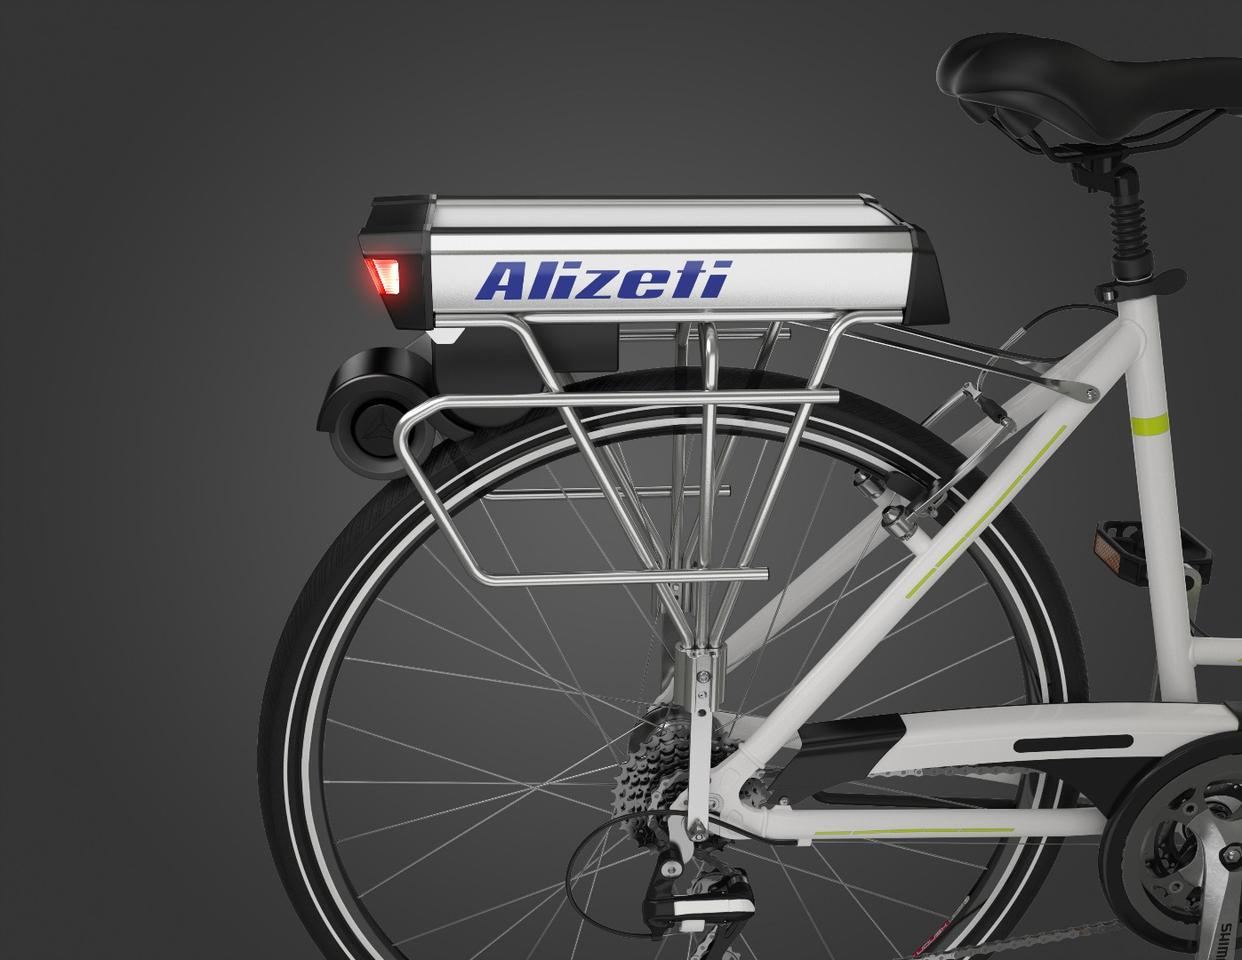 The Alizeti 300C system should be compatible with most makes and models of road bikes